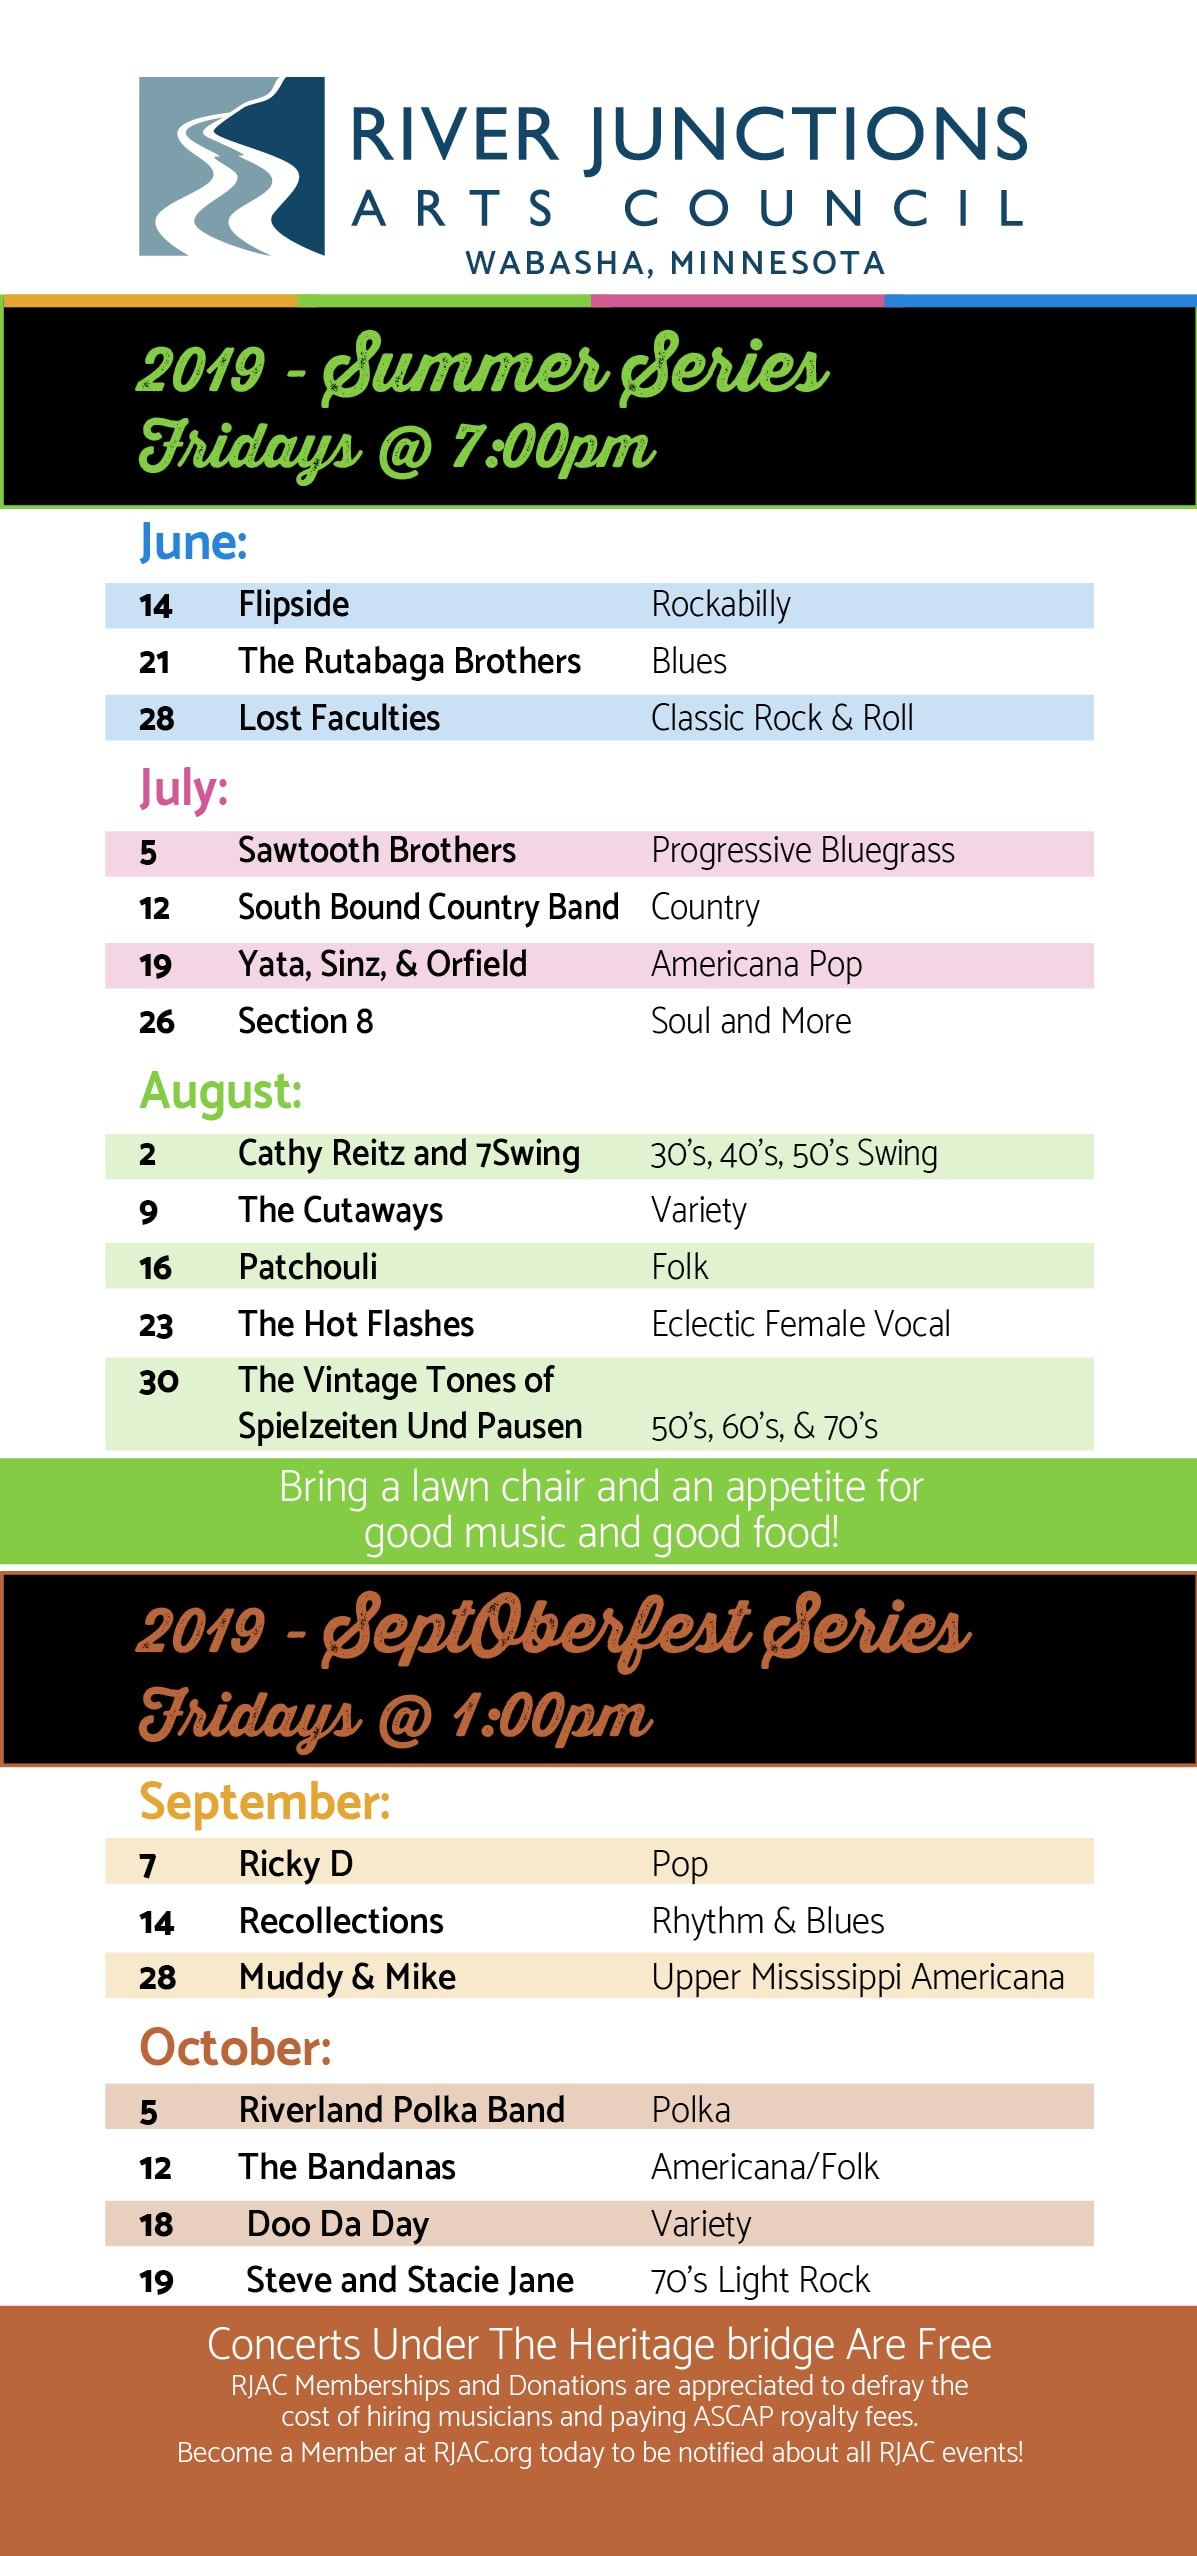 River Junctions Arts Council 2019 Free Concert Series